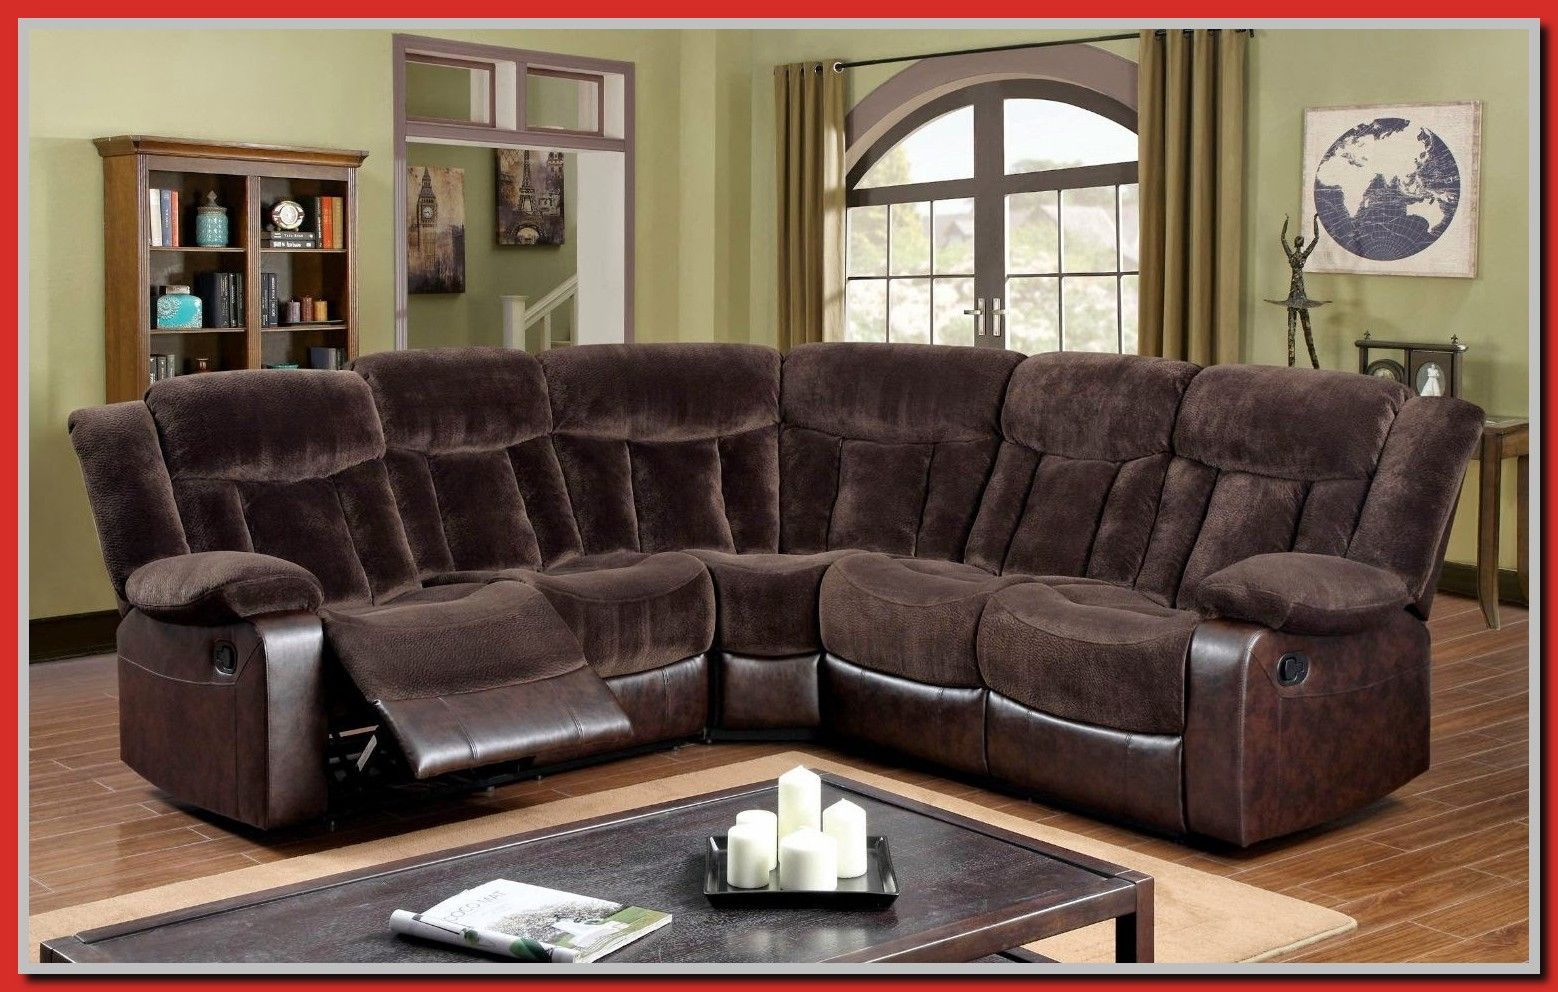 114 Reference Of Small Curved Sofa Uk In 2020 Corner Sectional Sofa Small Curved Sofa Sectional Sofa With Recliner